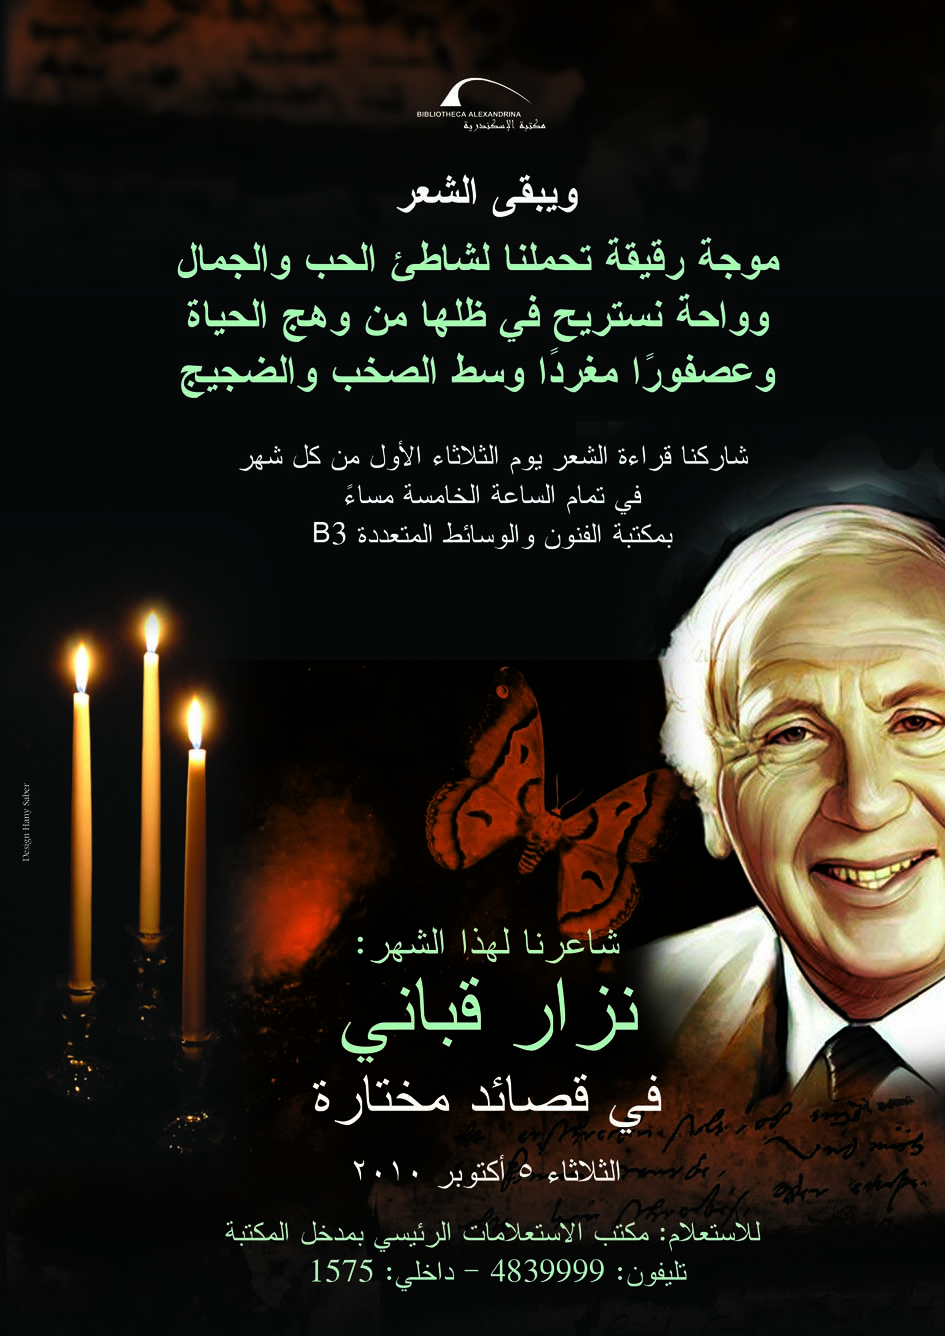 Qabbani wrote over 50 books of poetry